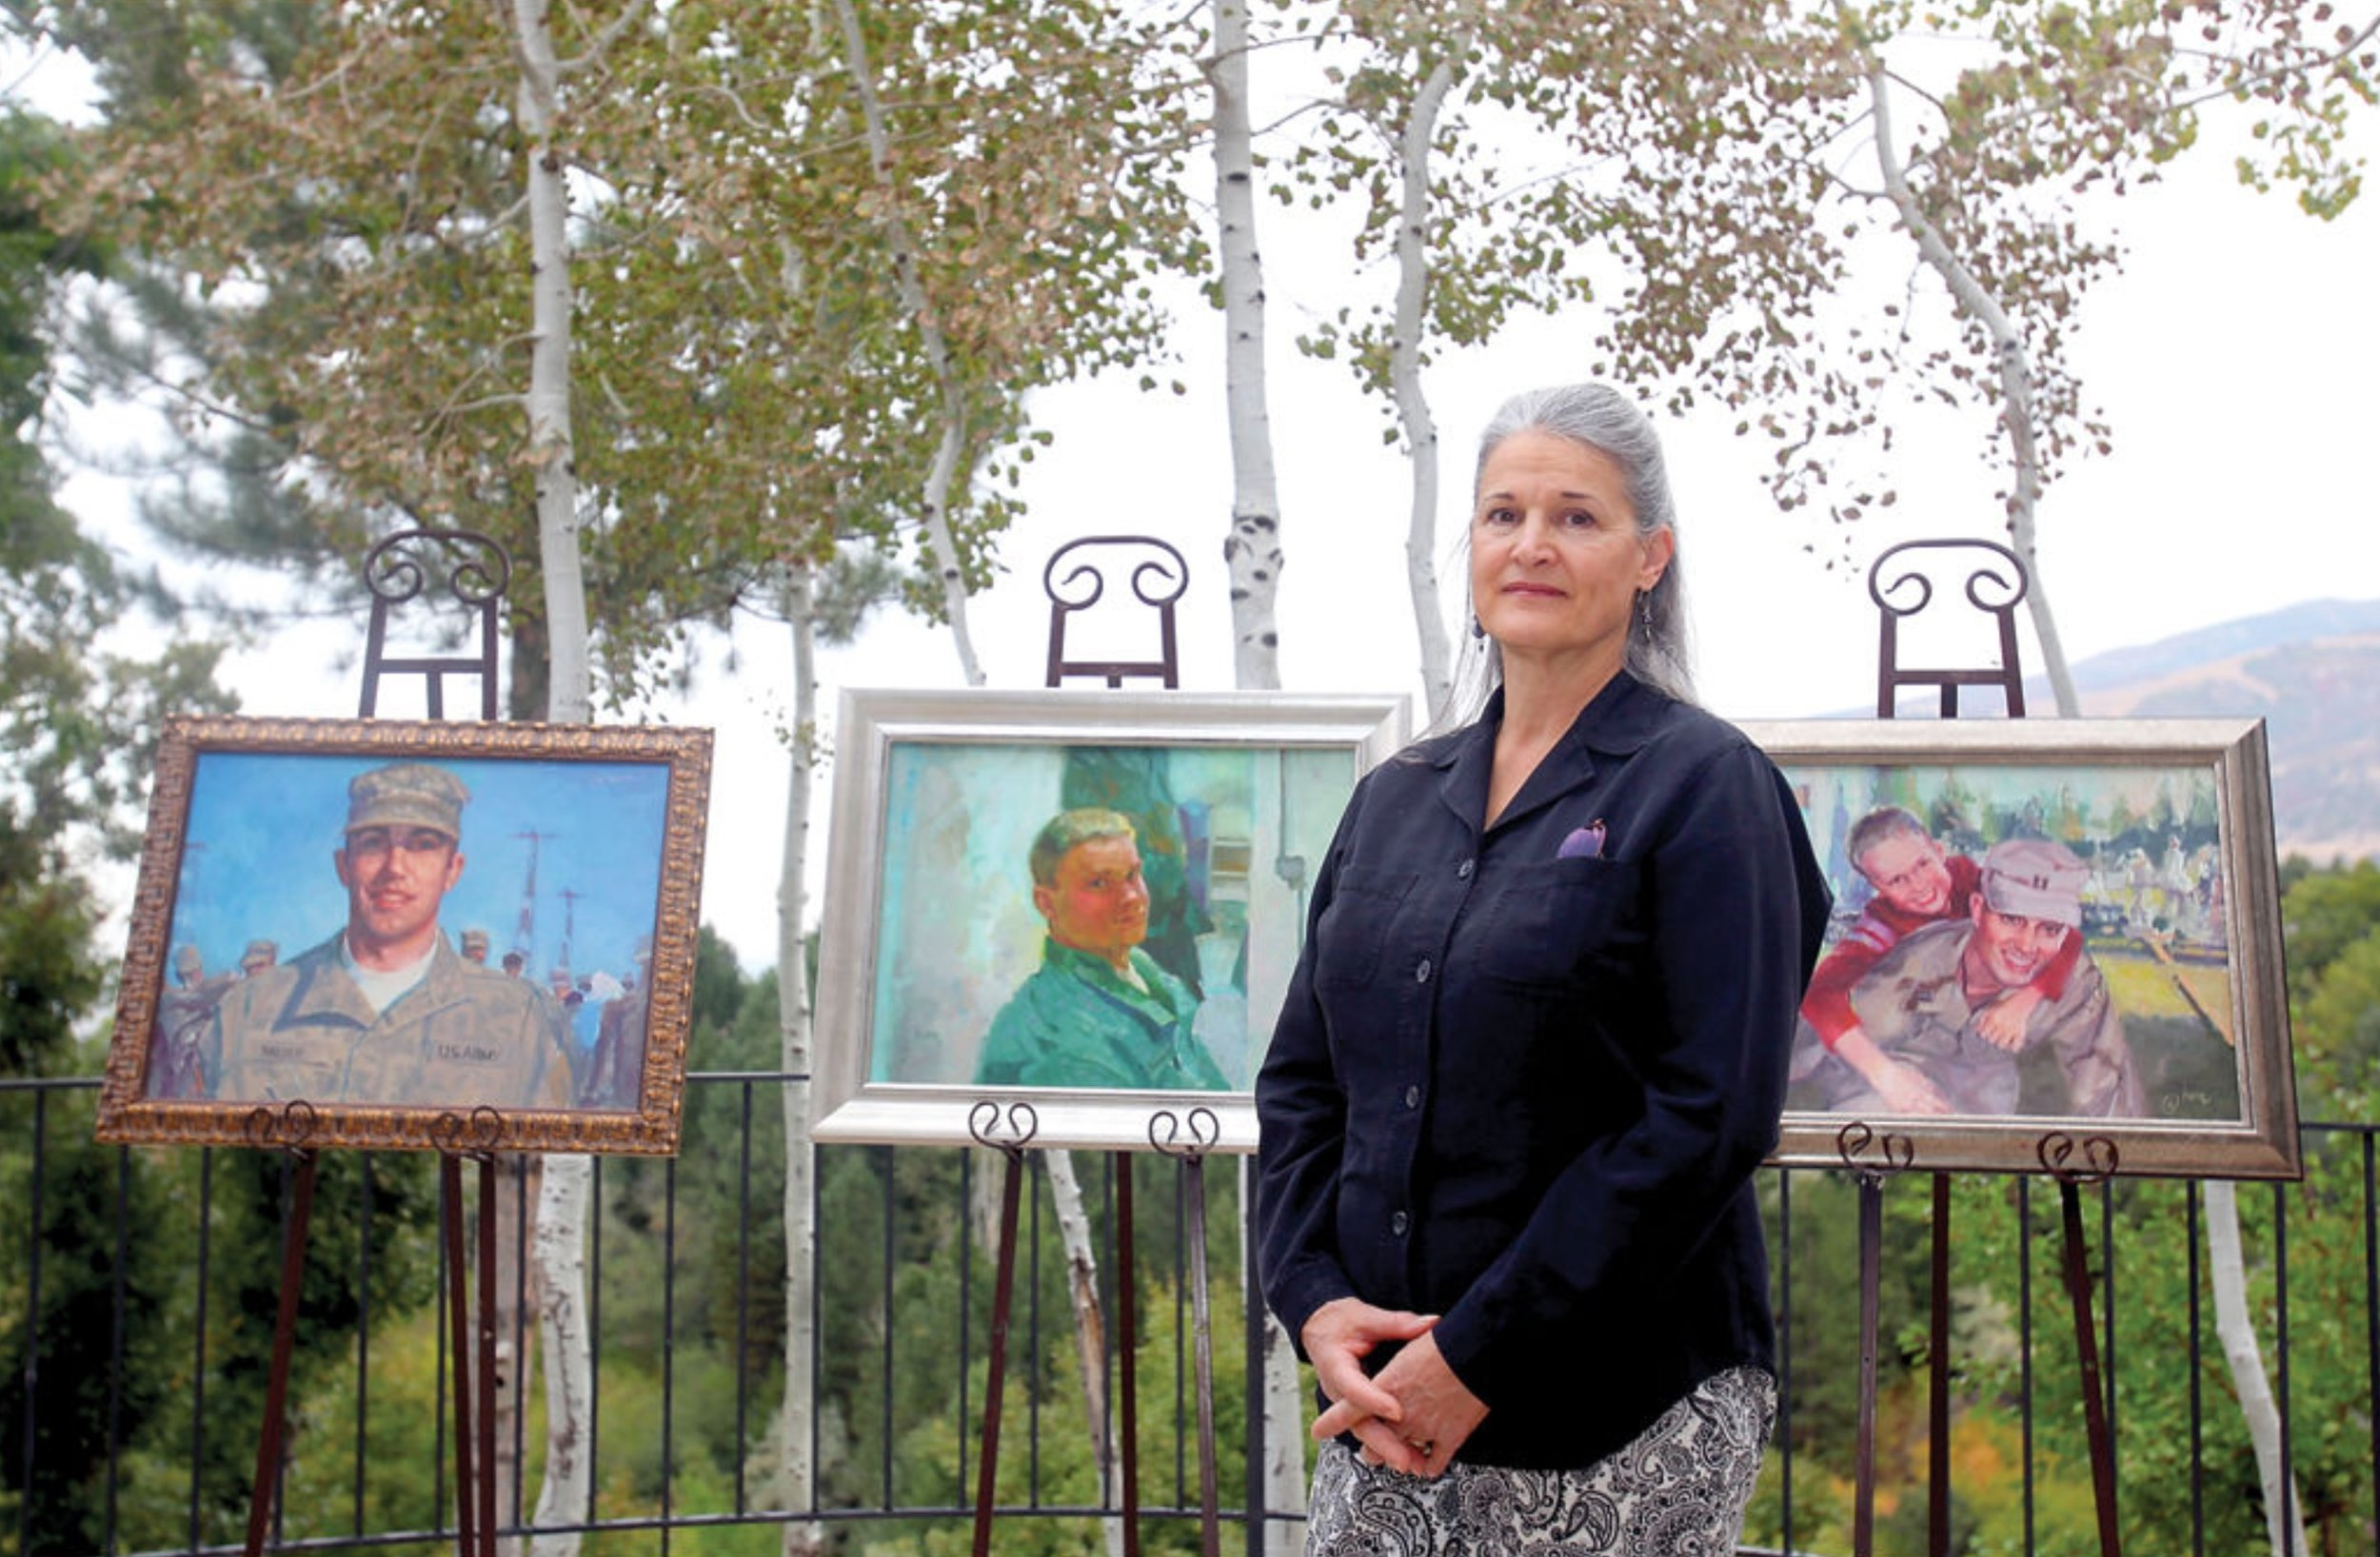 Anne Marie Oborn with some of the 250 portraits she has painted for the families of fallen members of the military. (Photo courtesy of the Standard Examiner)